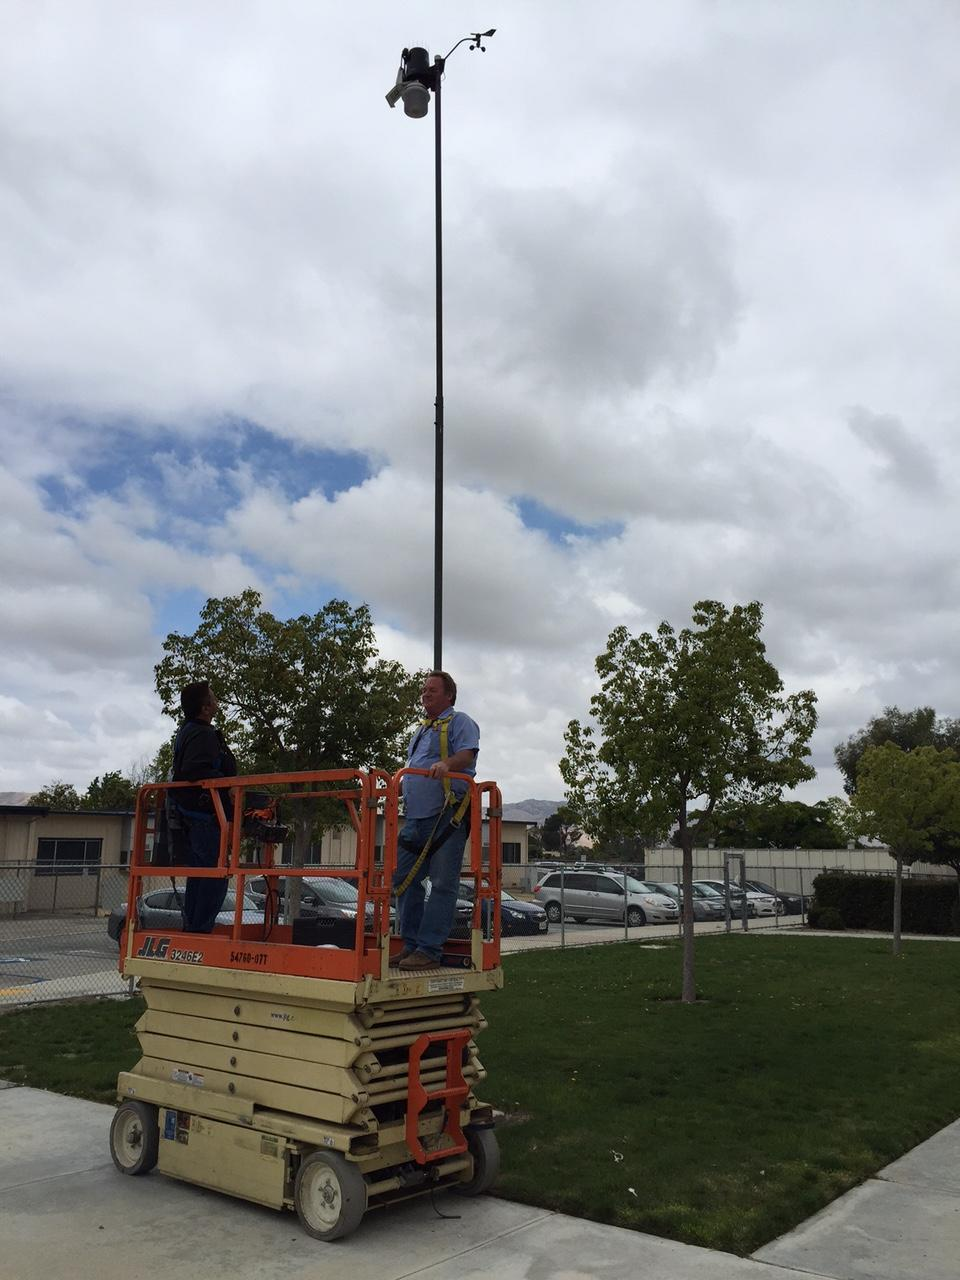 Mountain View Weather Station has gone live